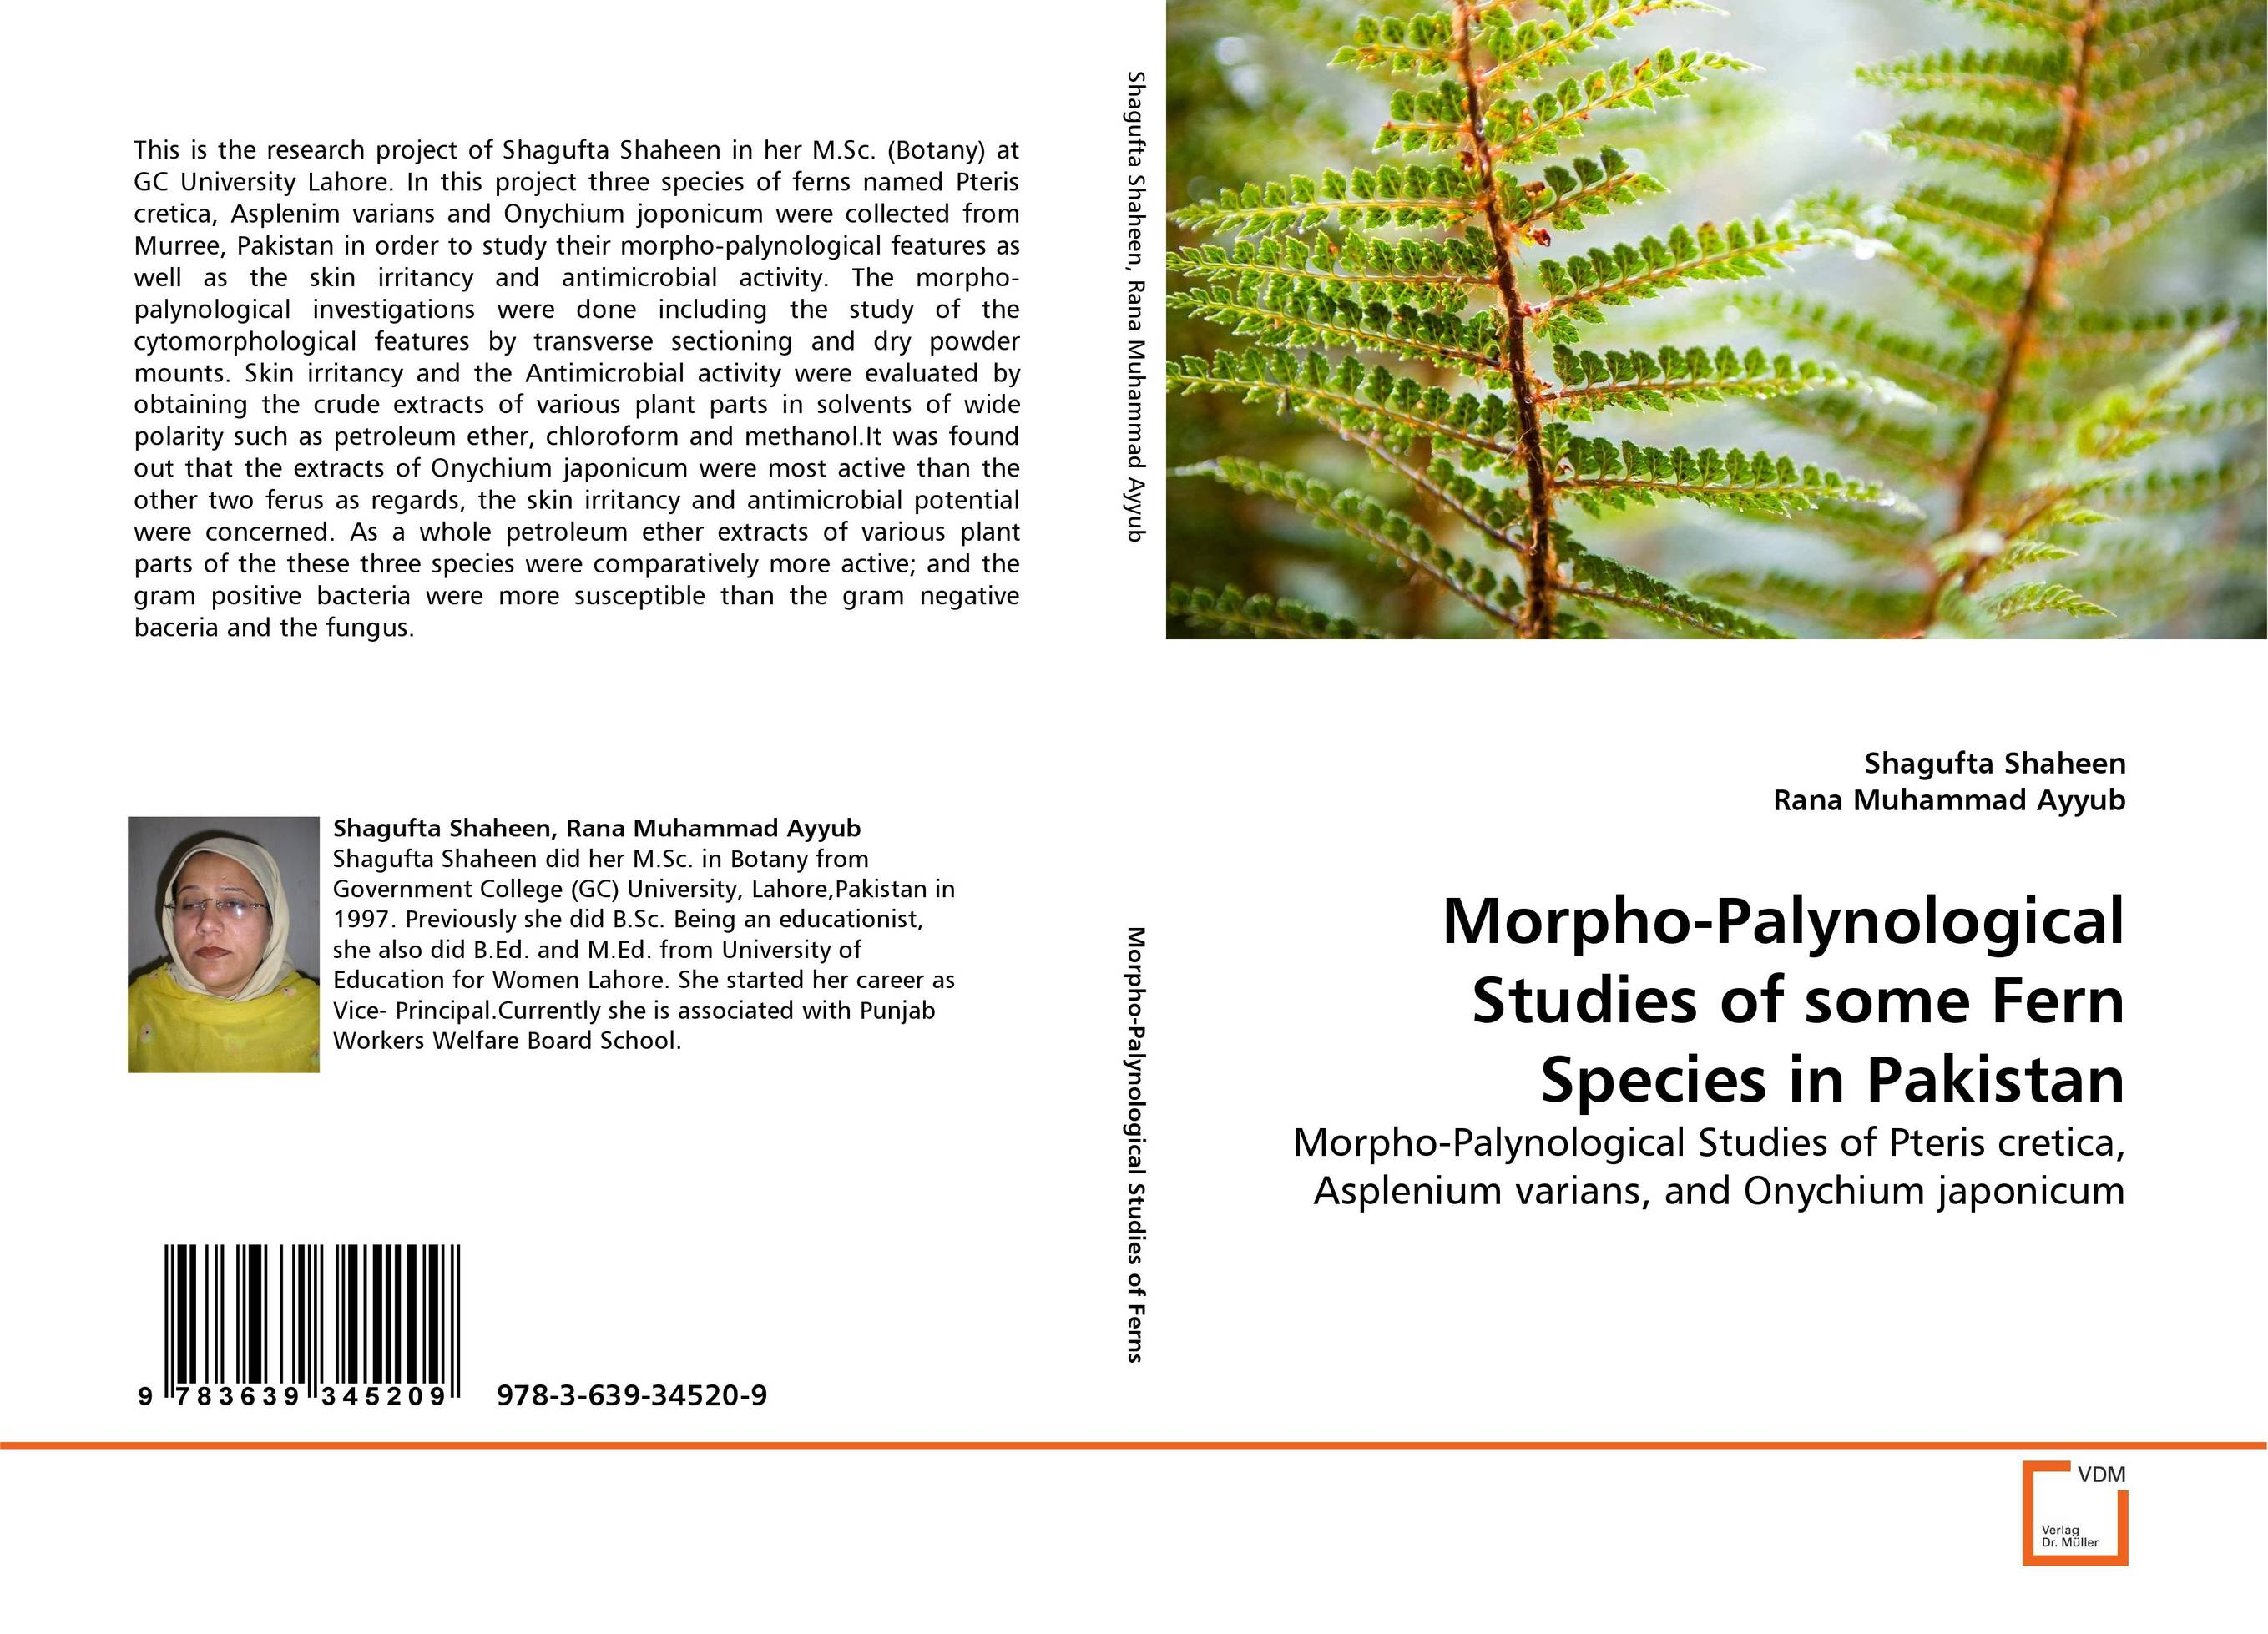 Morpho-Palynological Studies of some Fern Species in Pakistan тоник anariti skin tonic with extracts of aloe and rose